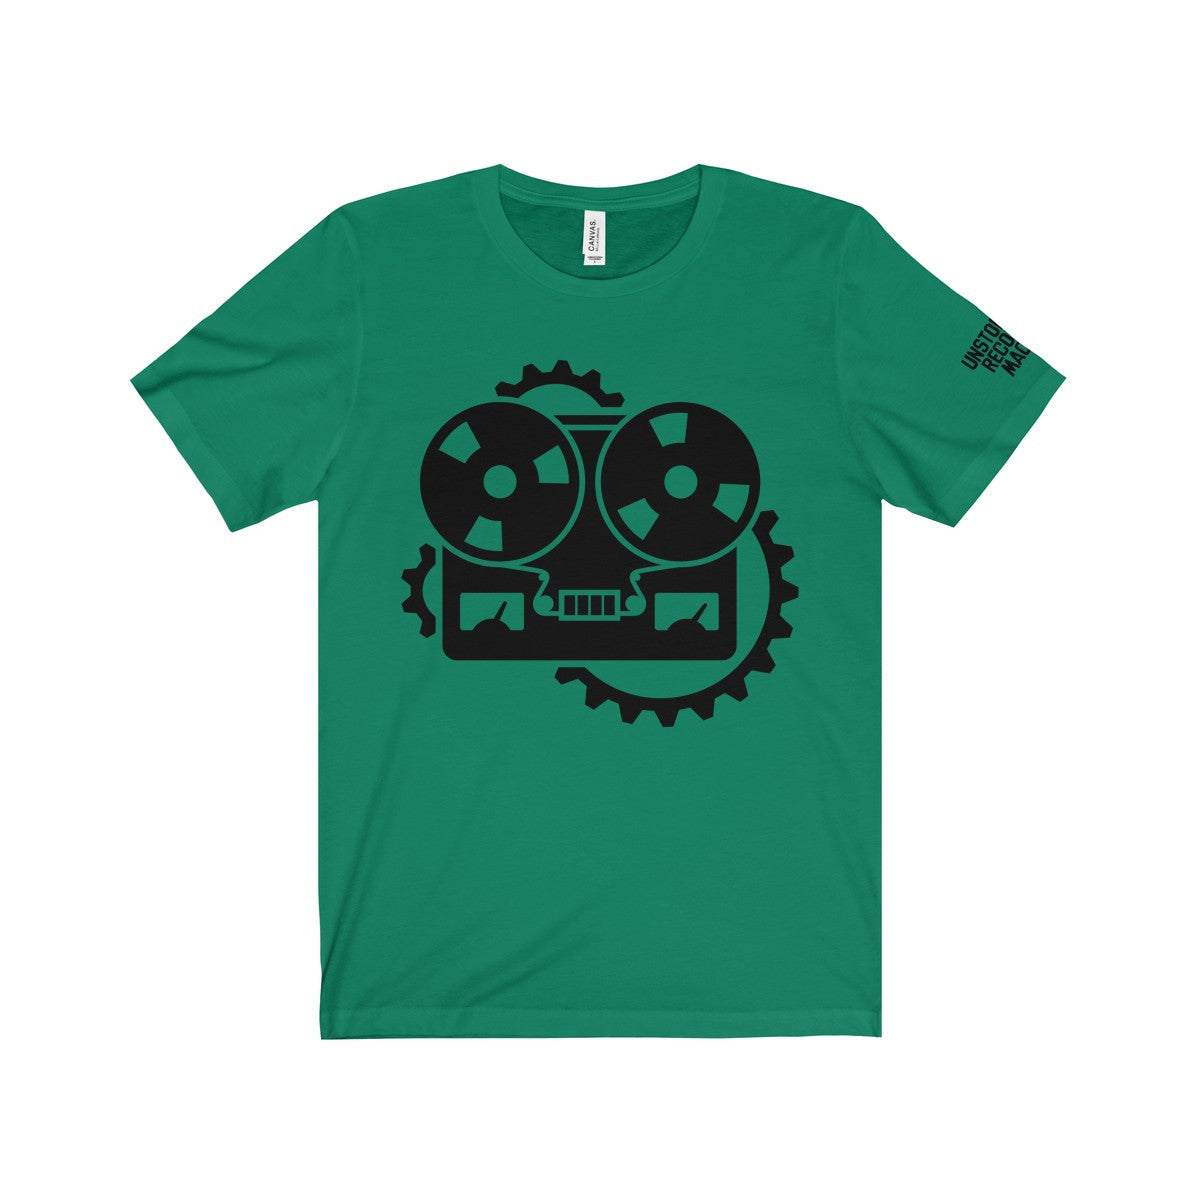 URM Tape Machine T-Shirt, Black Print